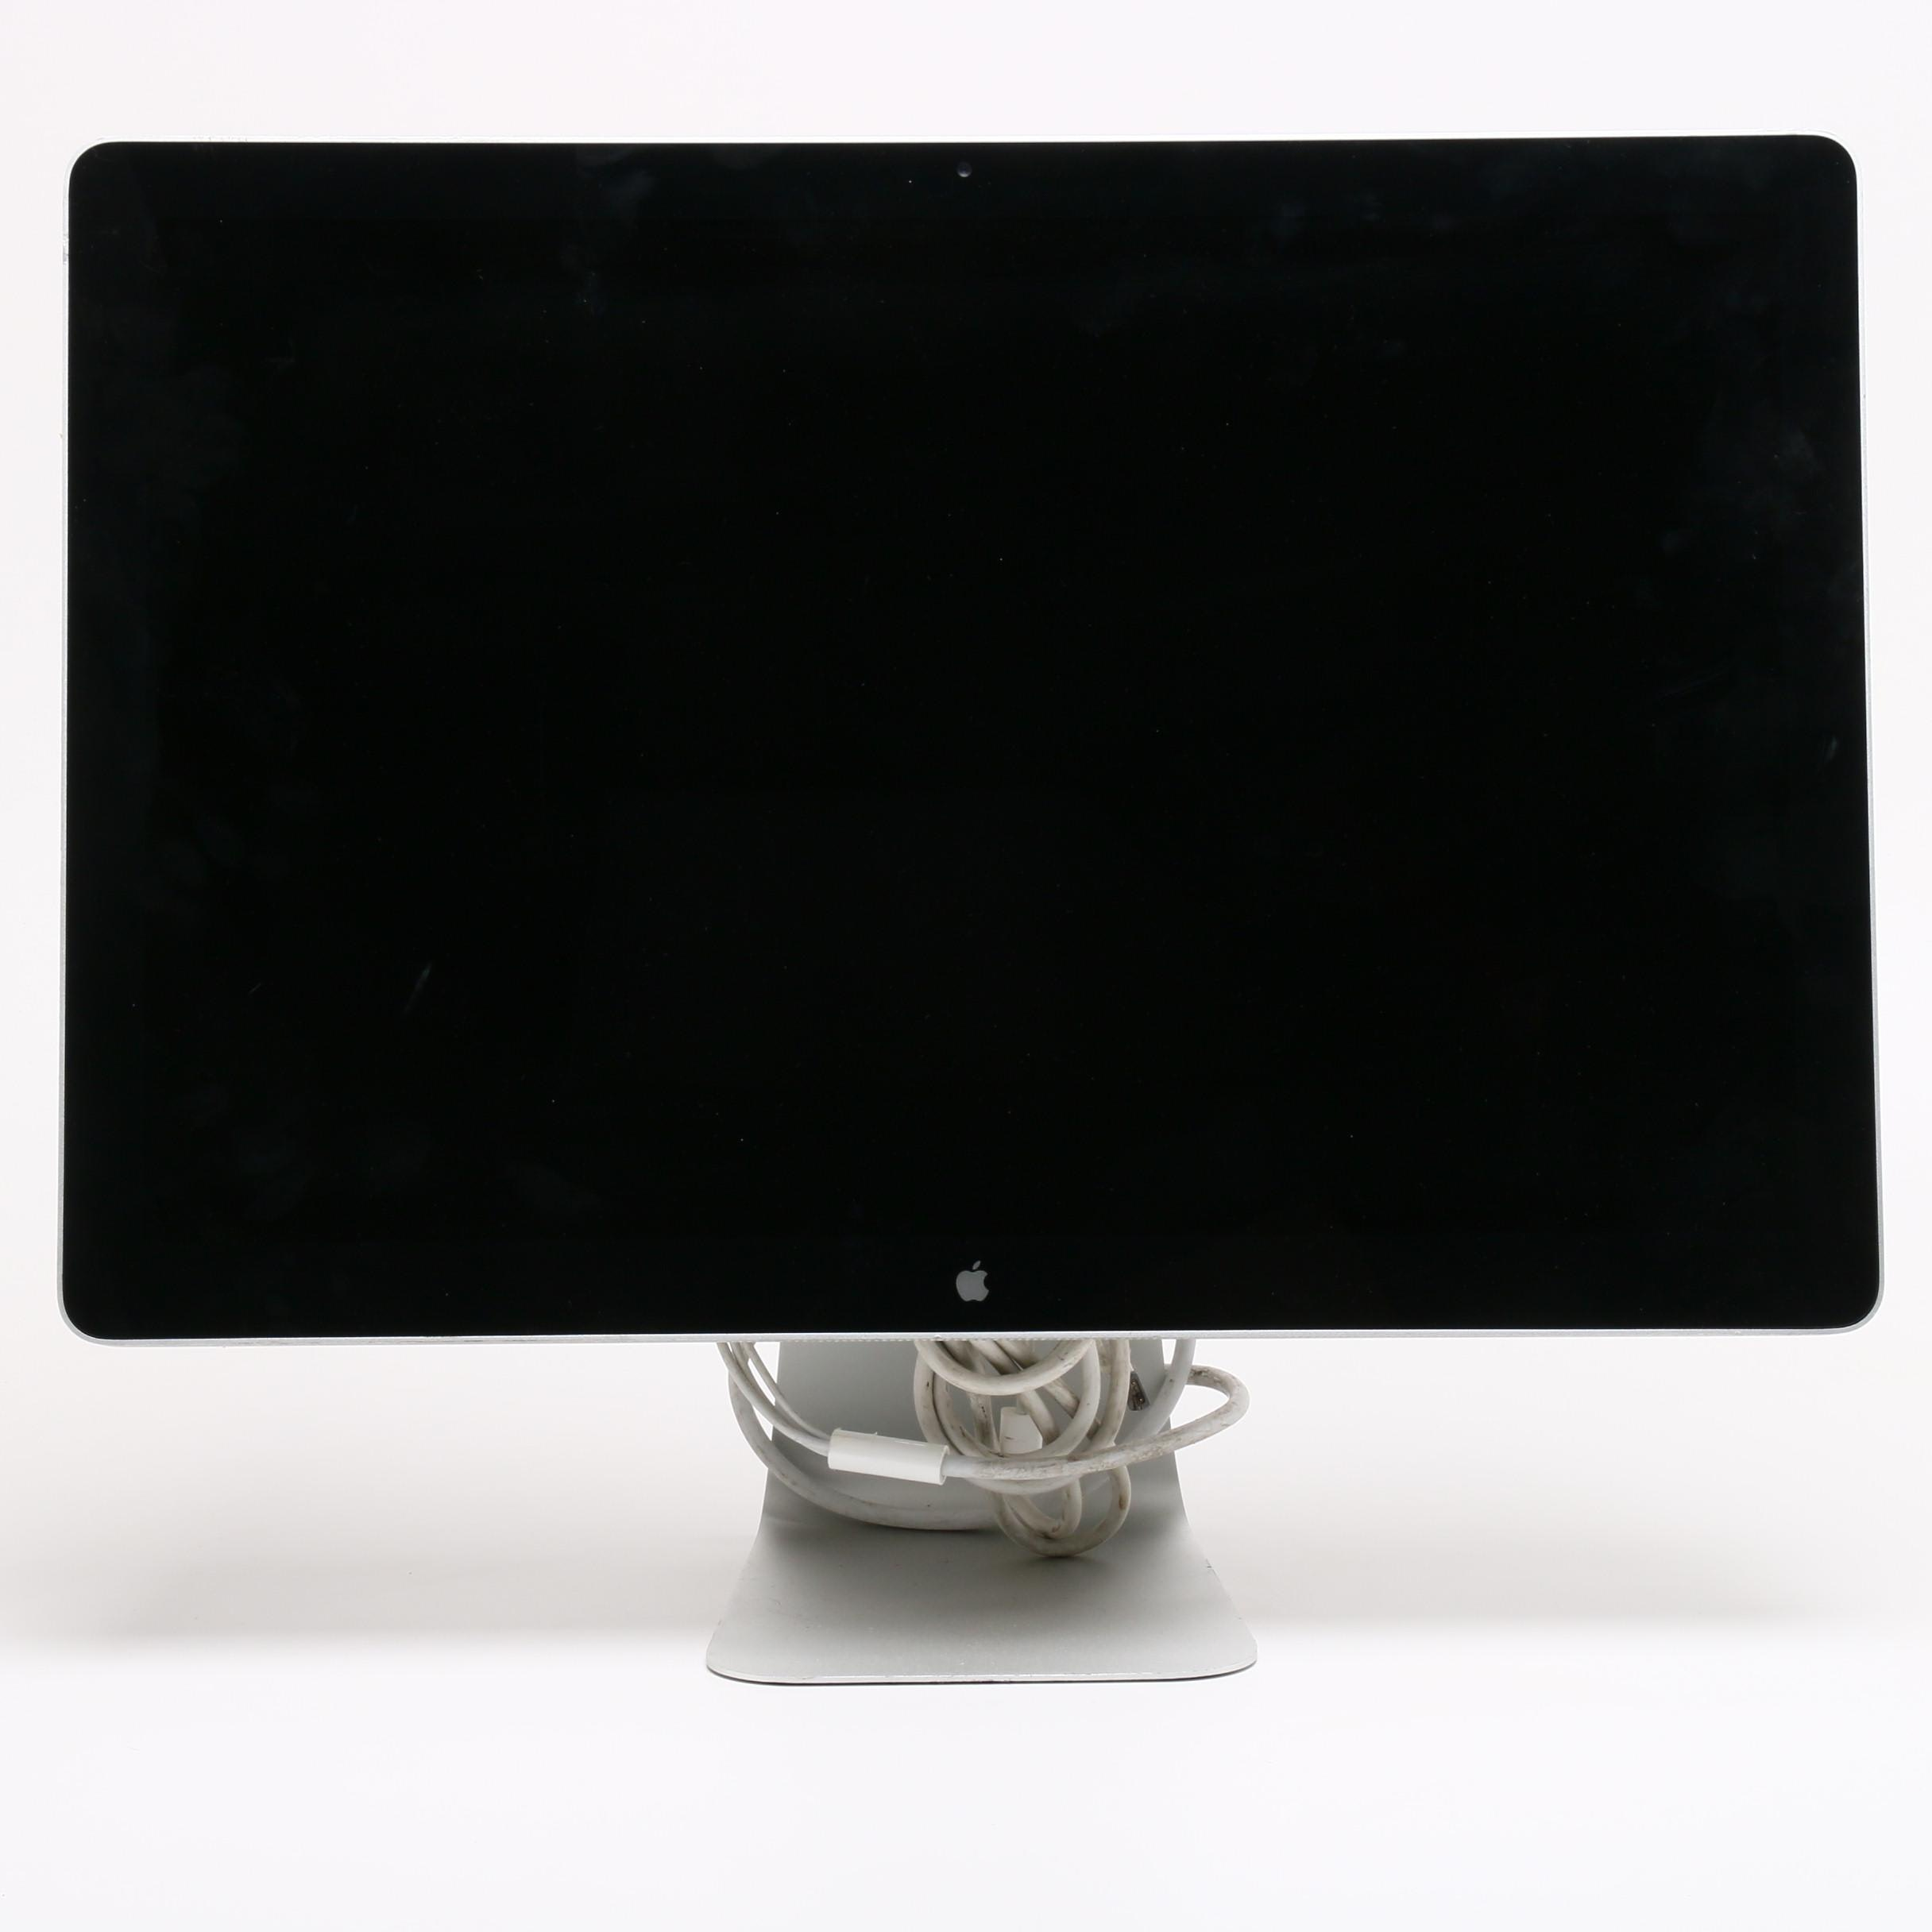 "24"" Apple Cinema Display Monitor"